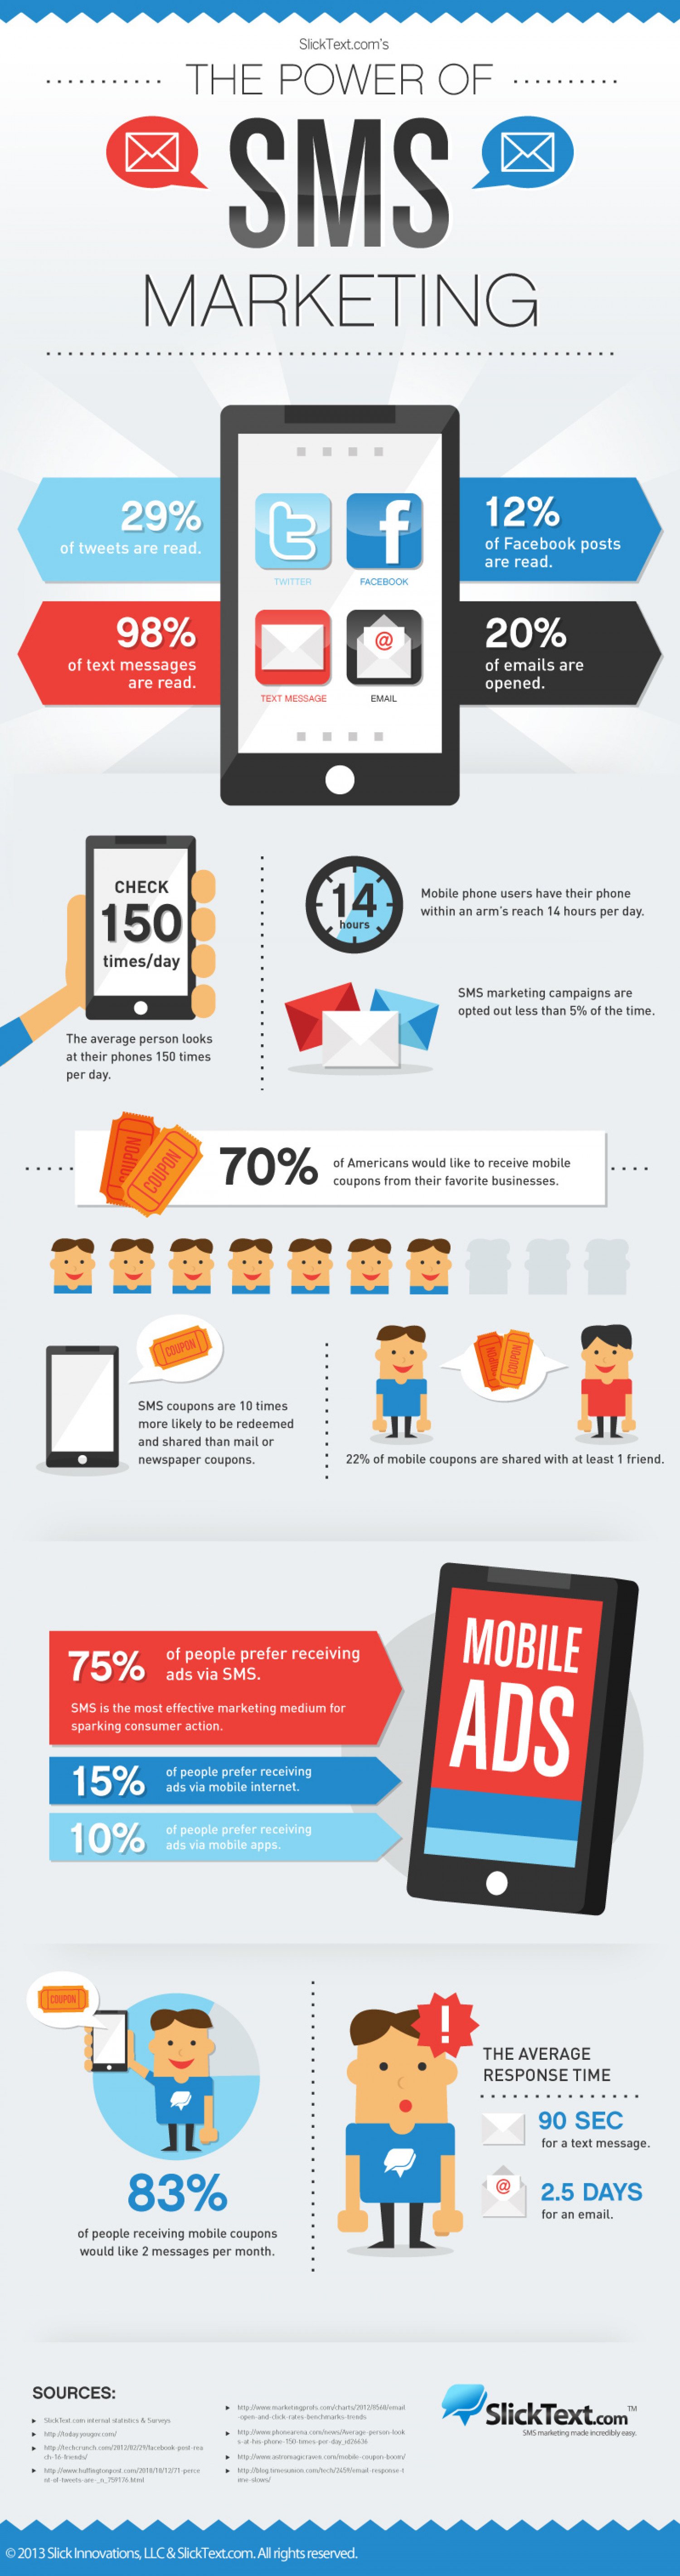 The Power Of SMS Marketing Infographic